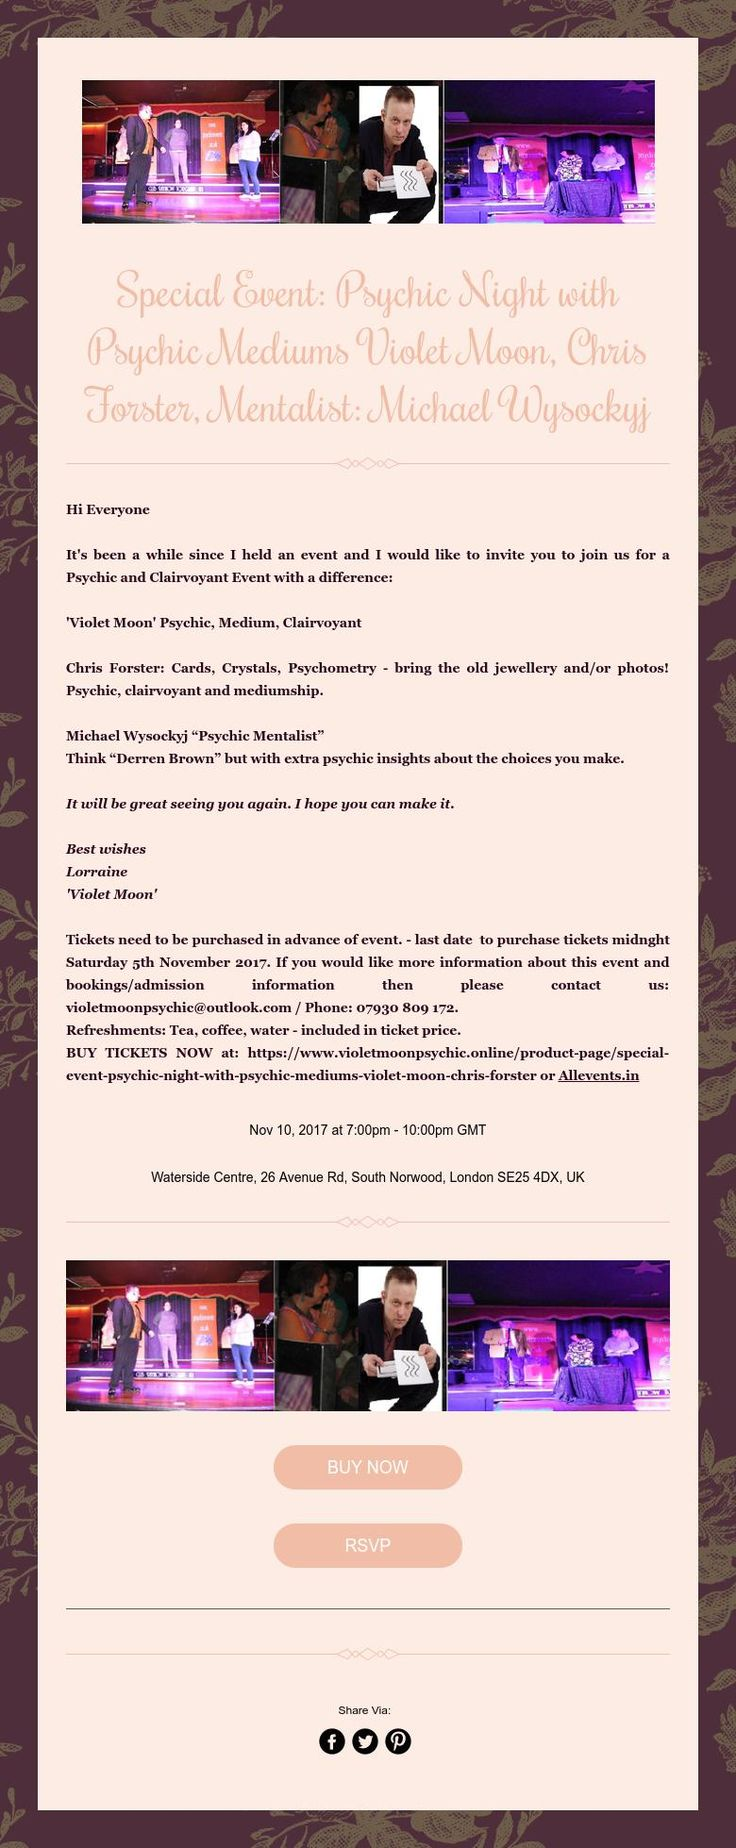 Special Event: Psychic Night with Psychic Mediums Violet Moon, Chris Forster, Mentalist: Michael Wysockyj